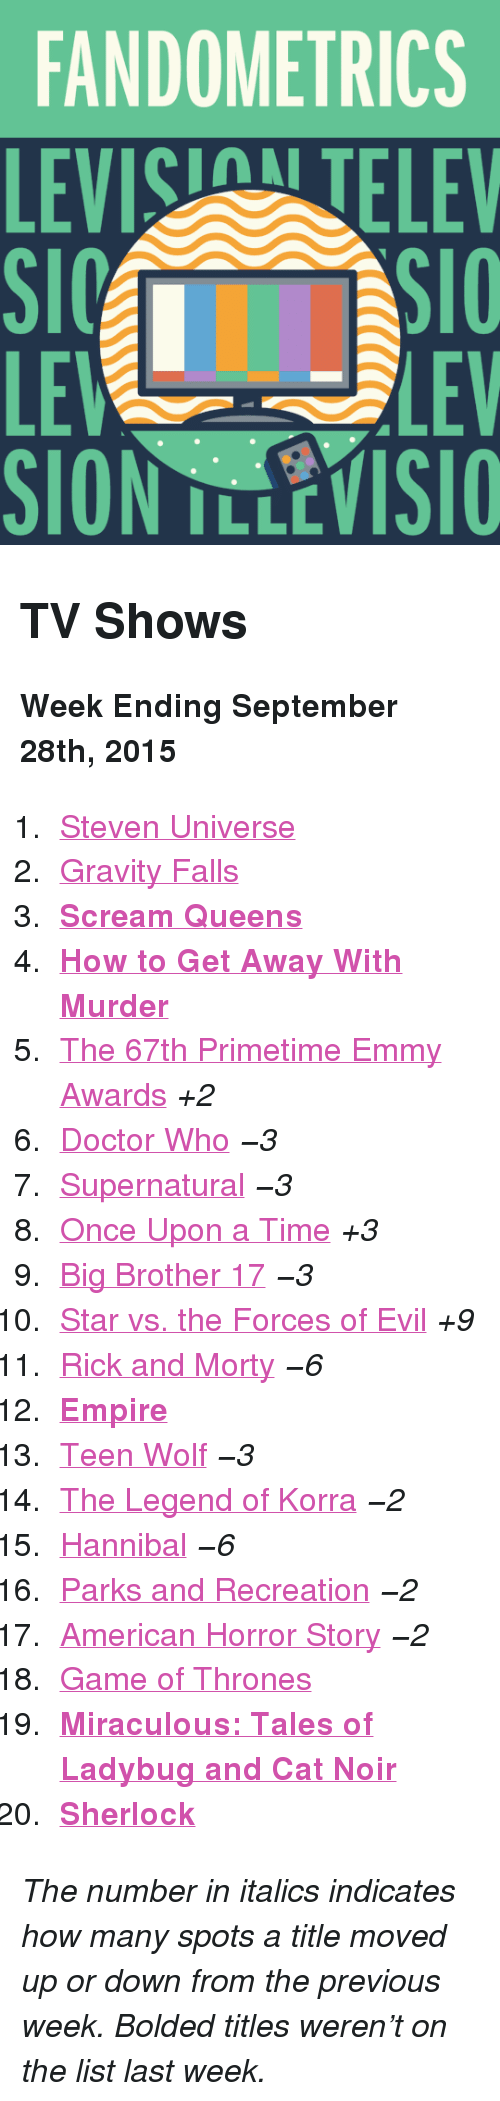 "emmy awards: FANDOMETRICS  LEVIS TELEV  LE  SION TLLEVISIO  LEV <h2>TV Shows</h2><p><b>Week Ending September 28th, 2015</b></p><ol><li><a href=""http://www.tumblr.com/search/steven%20universe"">Steven Universe</a></li>  <li><a href=""http://www.tumblr.com/search/gravity%20falls"">Gravity Falls</a></li>  <li><a href=""http://www.tumblr.com/search/scream%20queens""><b>Scream Queens</b></a></li>  <li><a href=""http://www.tumblr.com/search/how%20to%20get%20away%20with%20murder""><b>How to Get Away With Murder</b></a></li>  <li><a href=""http://www.tumblr.com/search/emmys"">The 67th Primetime Emmy Awards</a> <i>+2</i></li>  <li><a href=""http://www.tumblr.com/search/doctor%20who"">Doctor Who</a> <i>−3</i></li>  <li><a href=""http://www.tumblr.com/search/supernatural"">Supernatural</a> <i>−3</i></li>  <li><a href=""http://www.tumblr.com/search/ouat"">Once Upon a Time</a> <i>+3</i></li>  <li><a href=""http://www.tumblr.com/search/bb17"">Big Brother 17</a> <i>−3</i></li>  <li><a href=""http://www.tumblr.com/search/star%20vs%20the%20forces%20of%20evil"">Star vs. the Forces of Evil</a> <i>+9</i></li>  <li><a href=""http://www.tumblr.com/search/rick%20and%20morty"">Rick and Morty</a> <i>−6</i></li>  <li><a href=""http://www.tumblr.com/search/empire""><b>Empire</b></a></li>  <li><a href=""http://www.tumblr.com/search/teen%20wolf"">Teen Wolf</a> <i>−3</i></li>  <li><a href=""http://www.tumblr.com/search/legend%20of%20korra"">The Legend of Korra</a> <i>−2</i></li>  <li><a href=""http://www.tumblr.com/search/hannibal"">Hannibal</a> <i>−6</i></li>  <li><a href=""http://www.tumblr.com/search/parks%20and%20recreation"">Parks and Recreation</a> <i>−2</i></li>  <li><a href=""http://www.tumblr.com/search/american%20horror%20story"">American Horror Story</a> <i>−2</i></li>  <li><a href=""http://www.tumblr.com/search/game%20of%20thrones"">Game of Thrones</a></li>  <li><a href=""http://www.tumblr.com/search/miraculous%20ladybug""><b>Miraculous: Tales of Ladybug and Cat Noir</b></a></li>  <li><a href=""http://www.tumblr.com/search/sherlock""><b>Sherlock</b></a></li></ol><p><i>The number in italics indicates how many spots a title moved up or down from the previous week. Bolded titles weren't on the list last week.</i></p>"